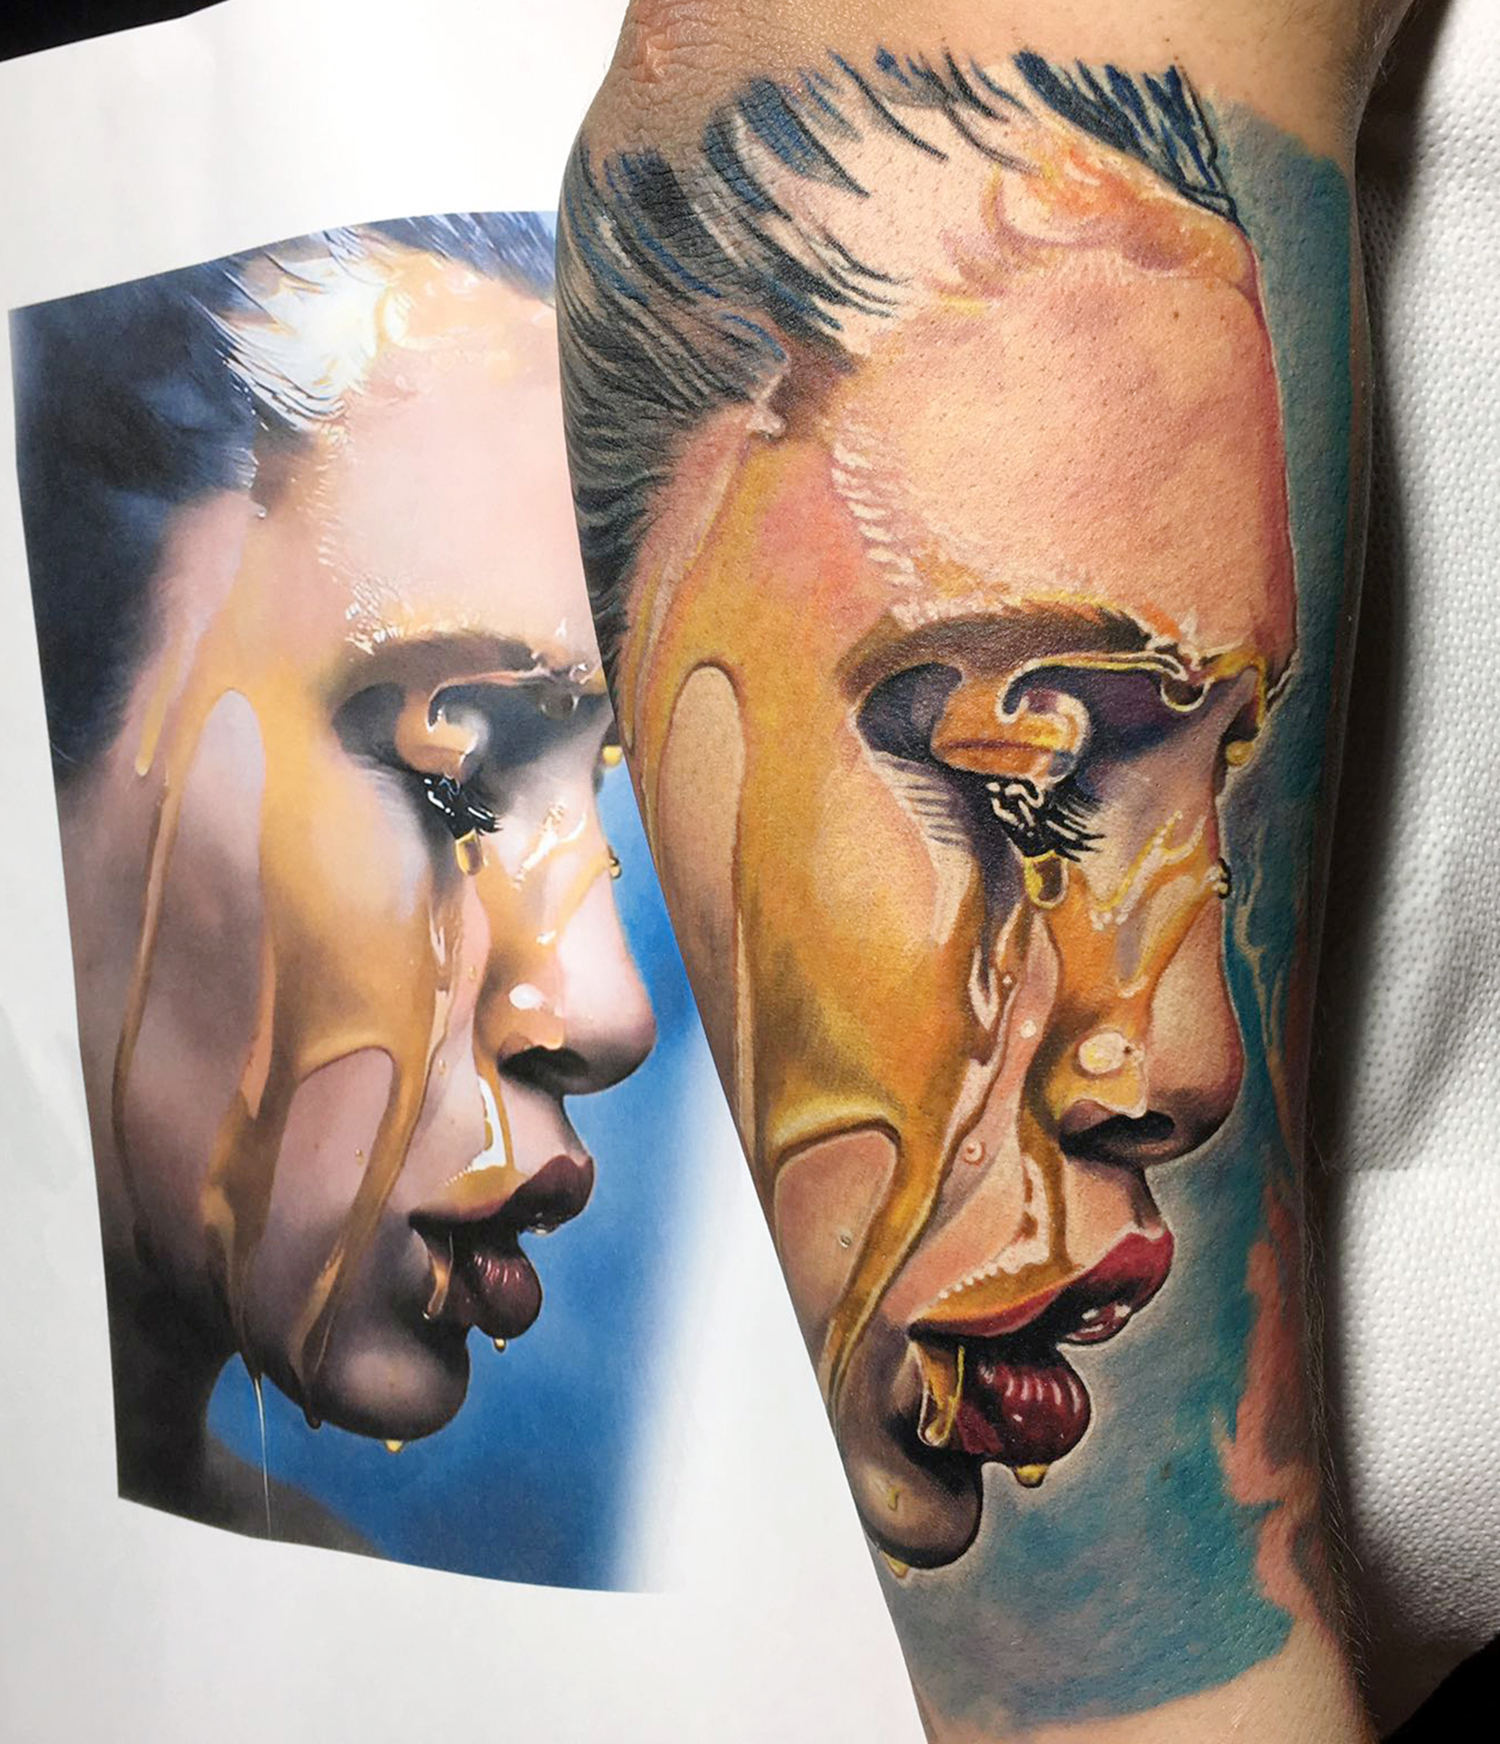 Mike dargas art, tattooed by mauro amaral